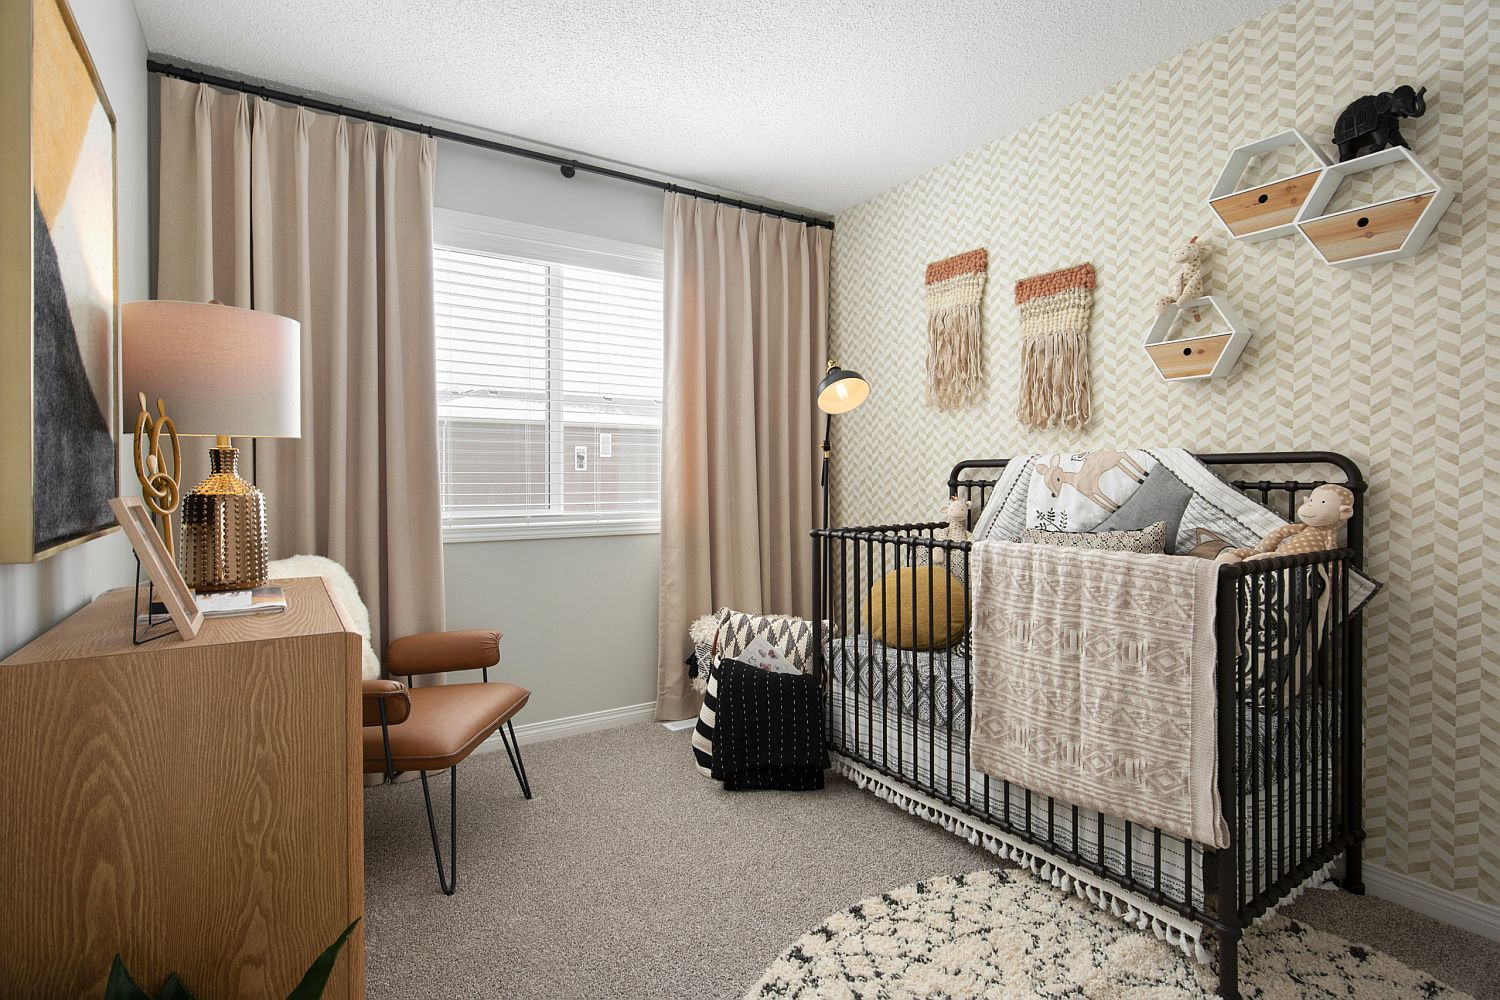 Chevron pattern backdrop for the small eclectic nursery in neutral hues